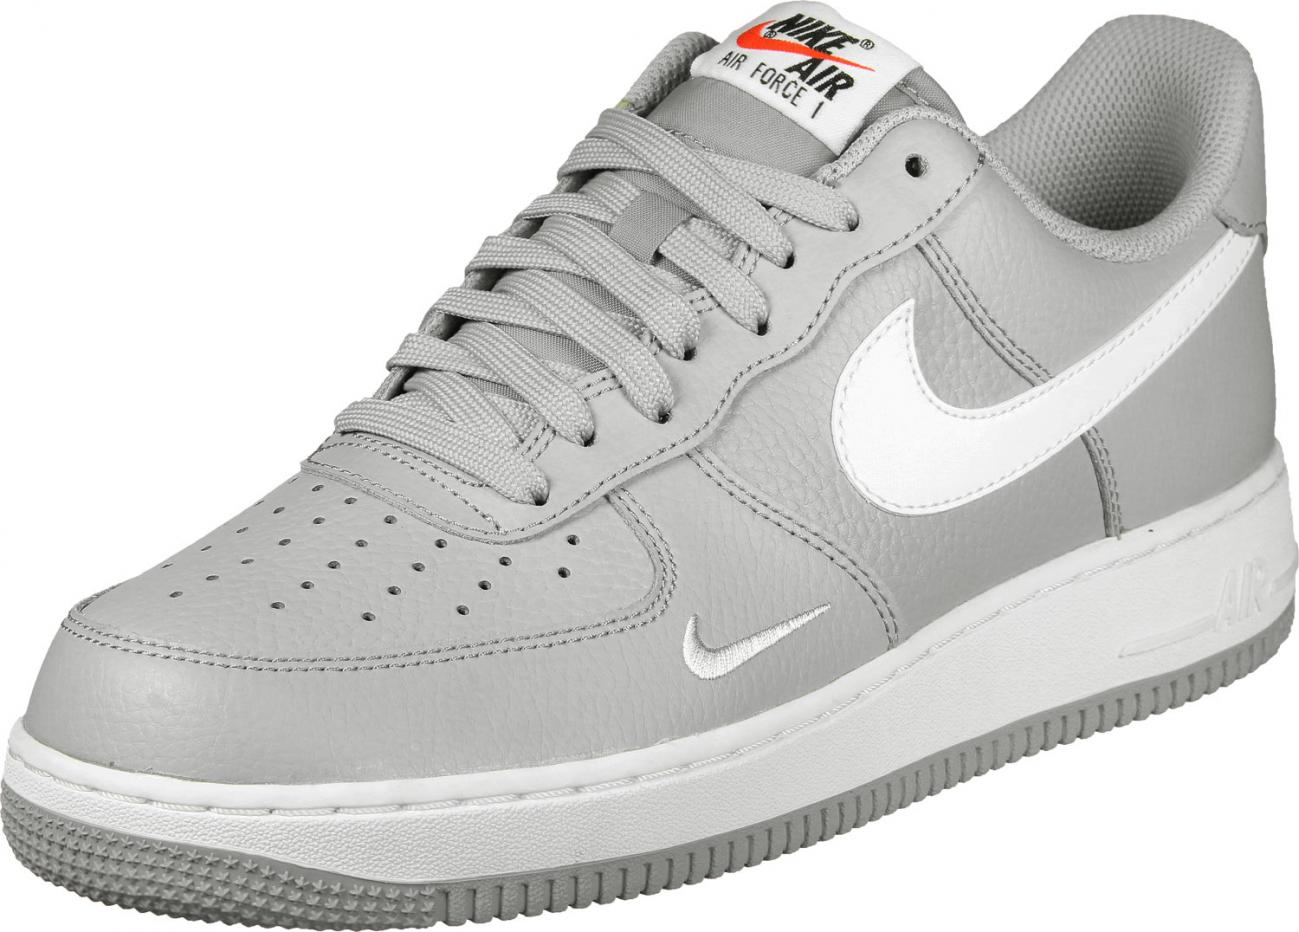 air force 1 grise femme,Nike Air Force 1'07 blanche grise et or ...